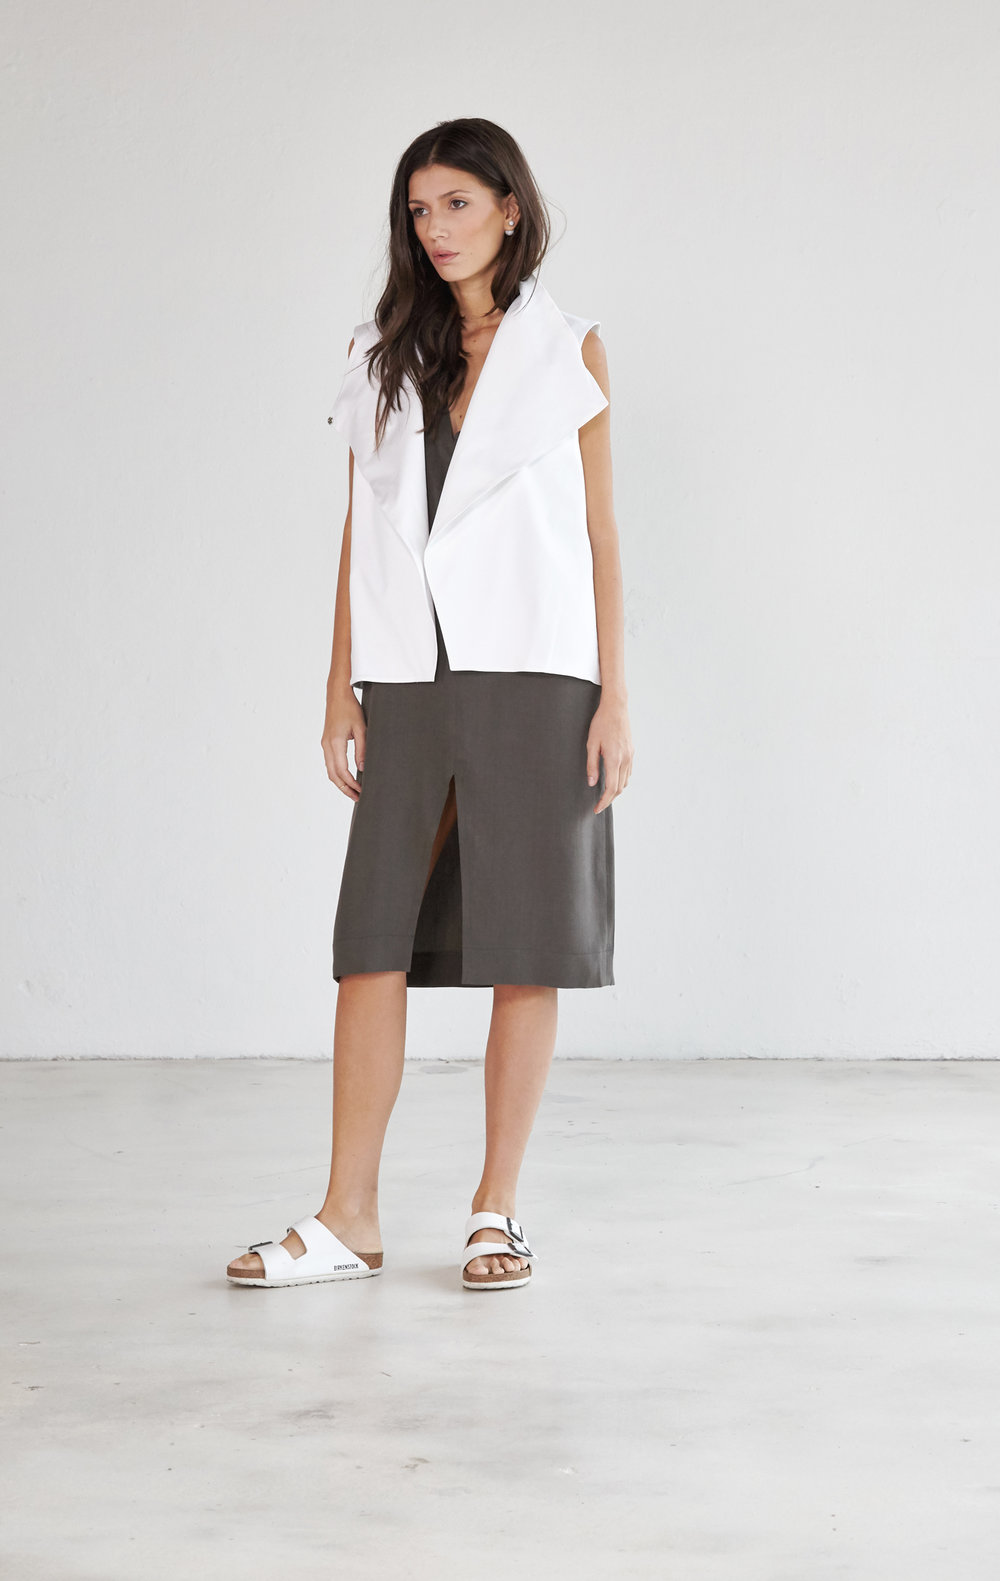 ERIKA_SS16_COLLECTION04632sm.jpg